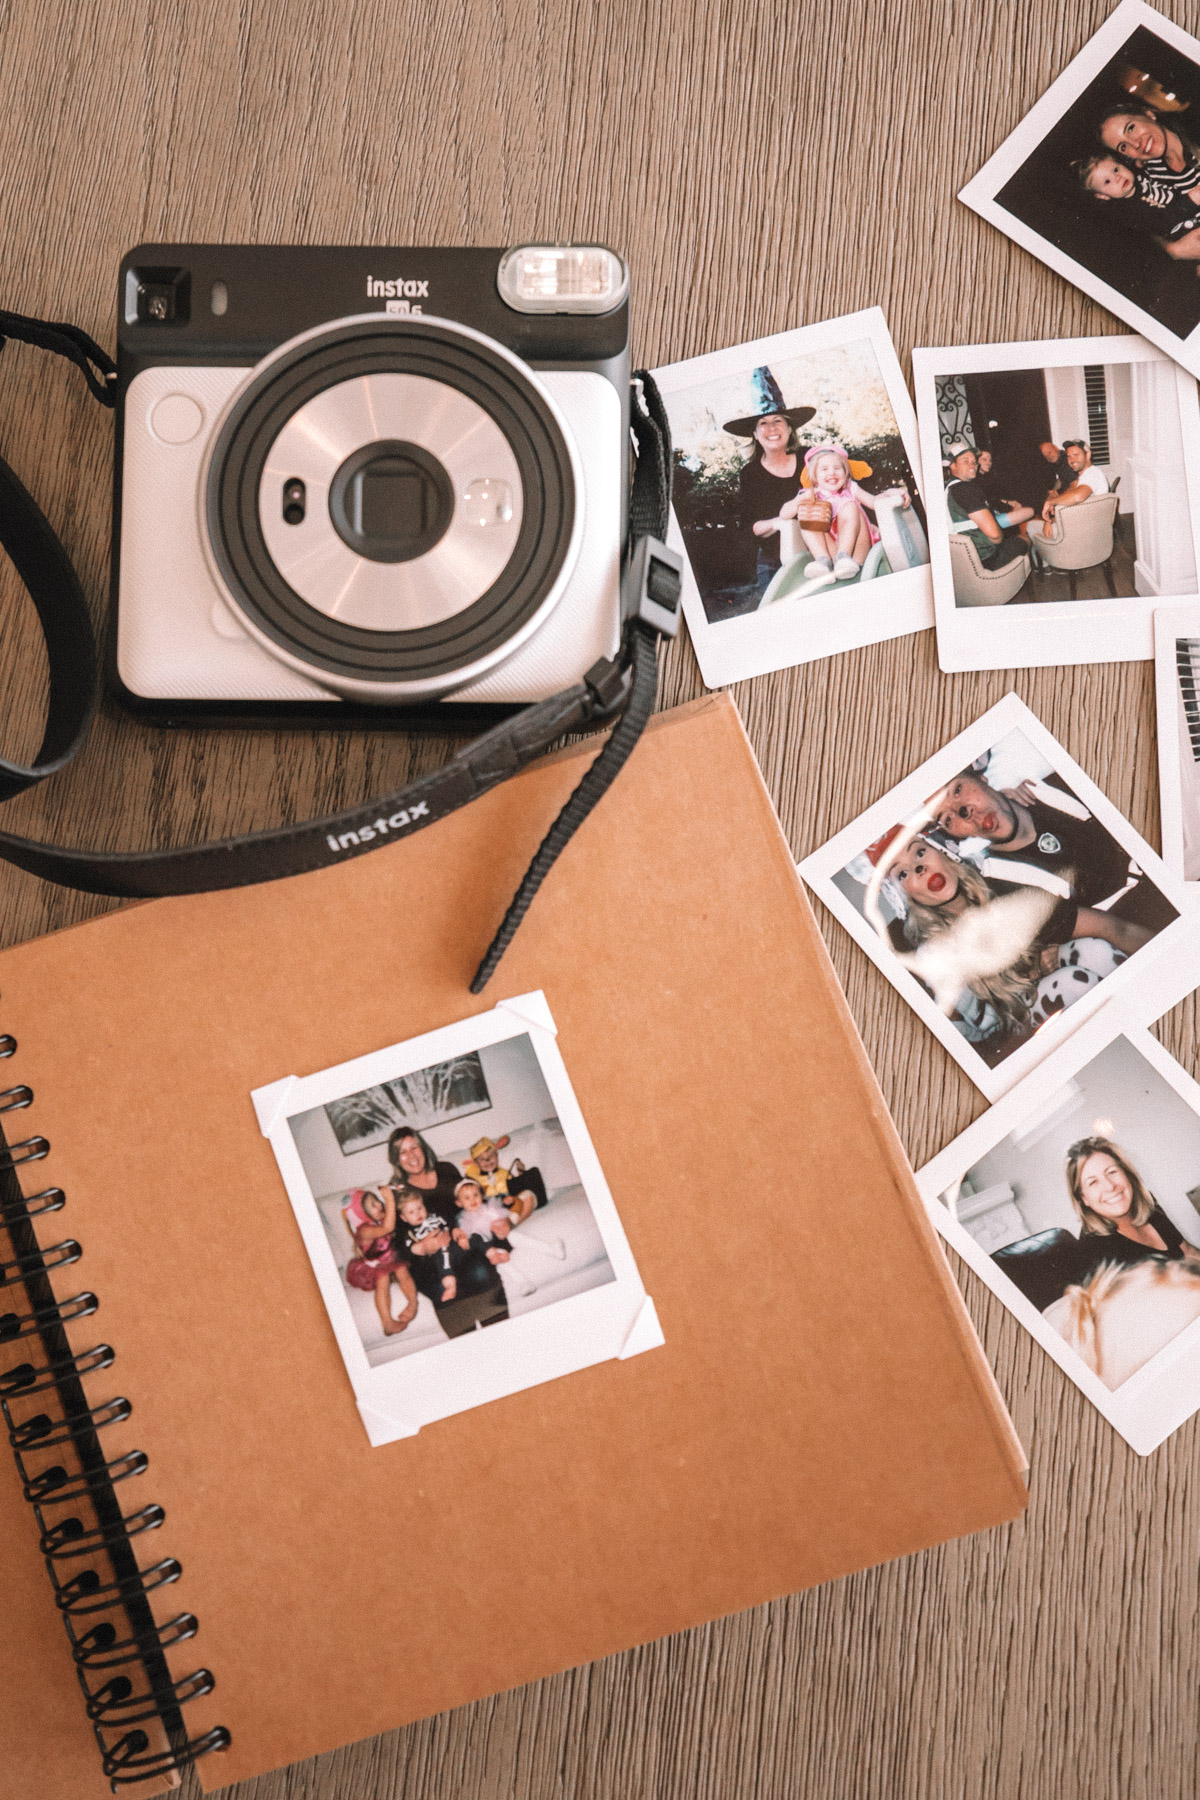 Amber, Rosie and Atticus scrapbooking with their Fujifilm prints. A Meaningful Gift for Grandma and Grandpa | Barefoot Blonde | Amber Fillerup Clark